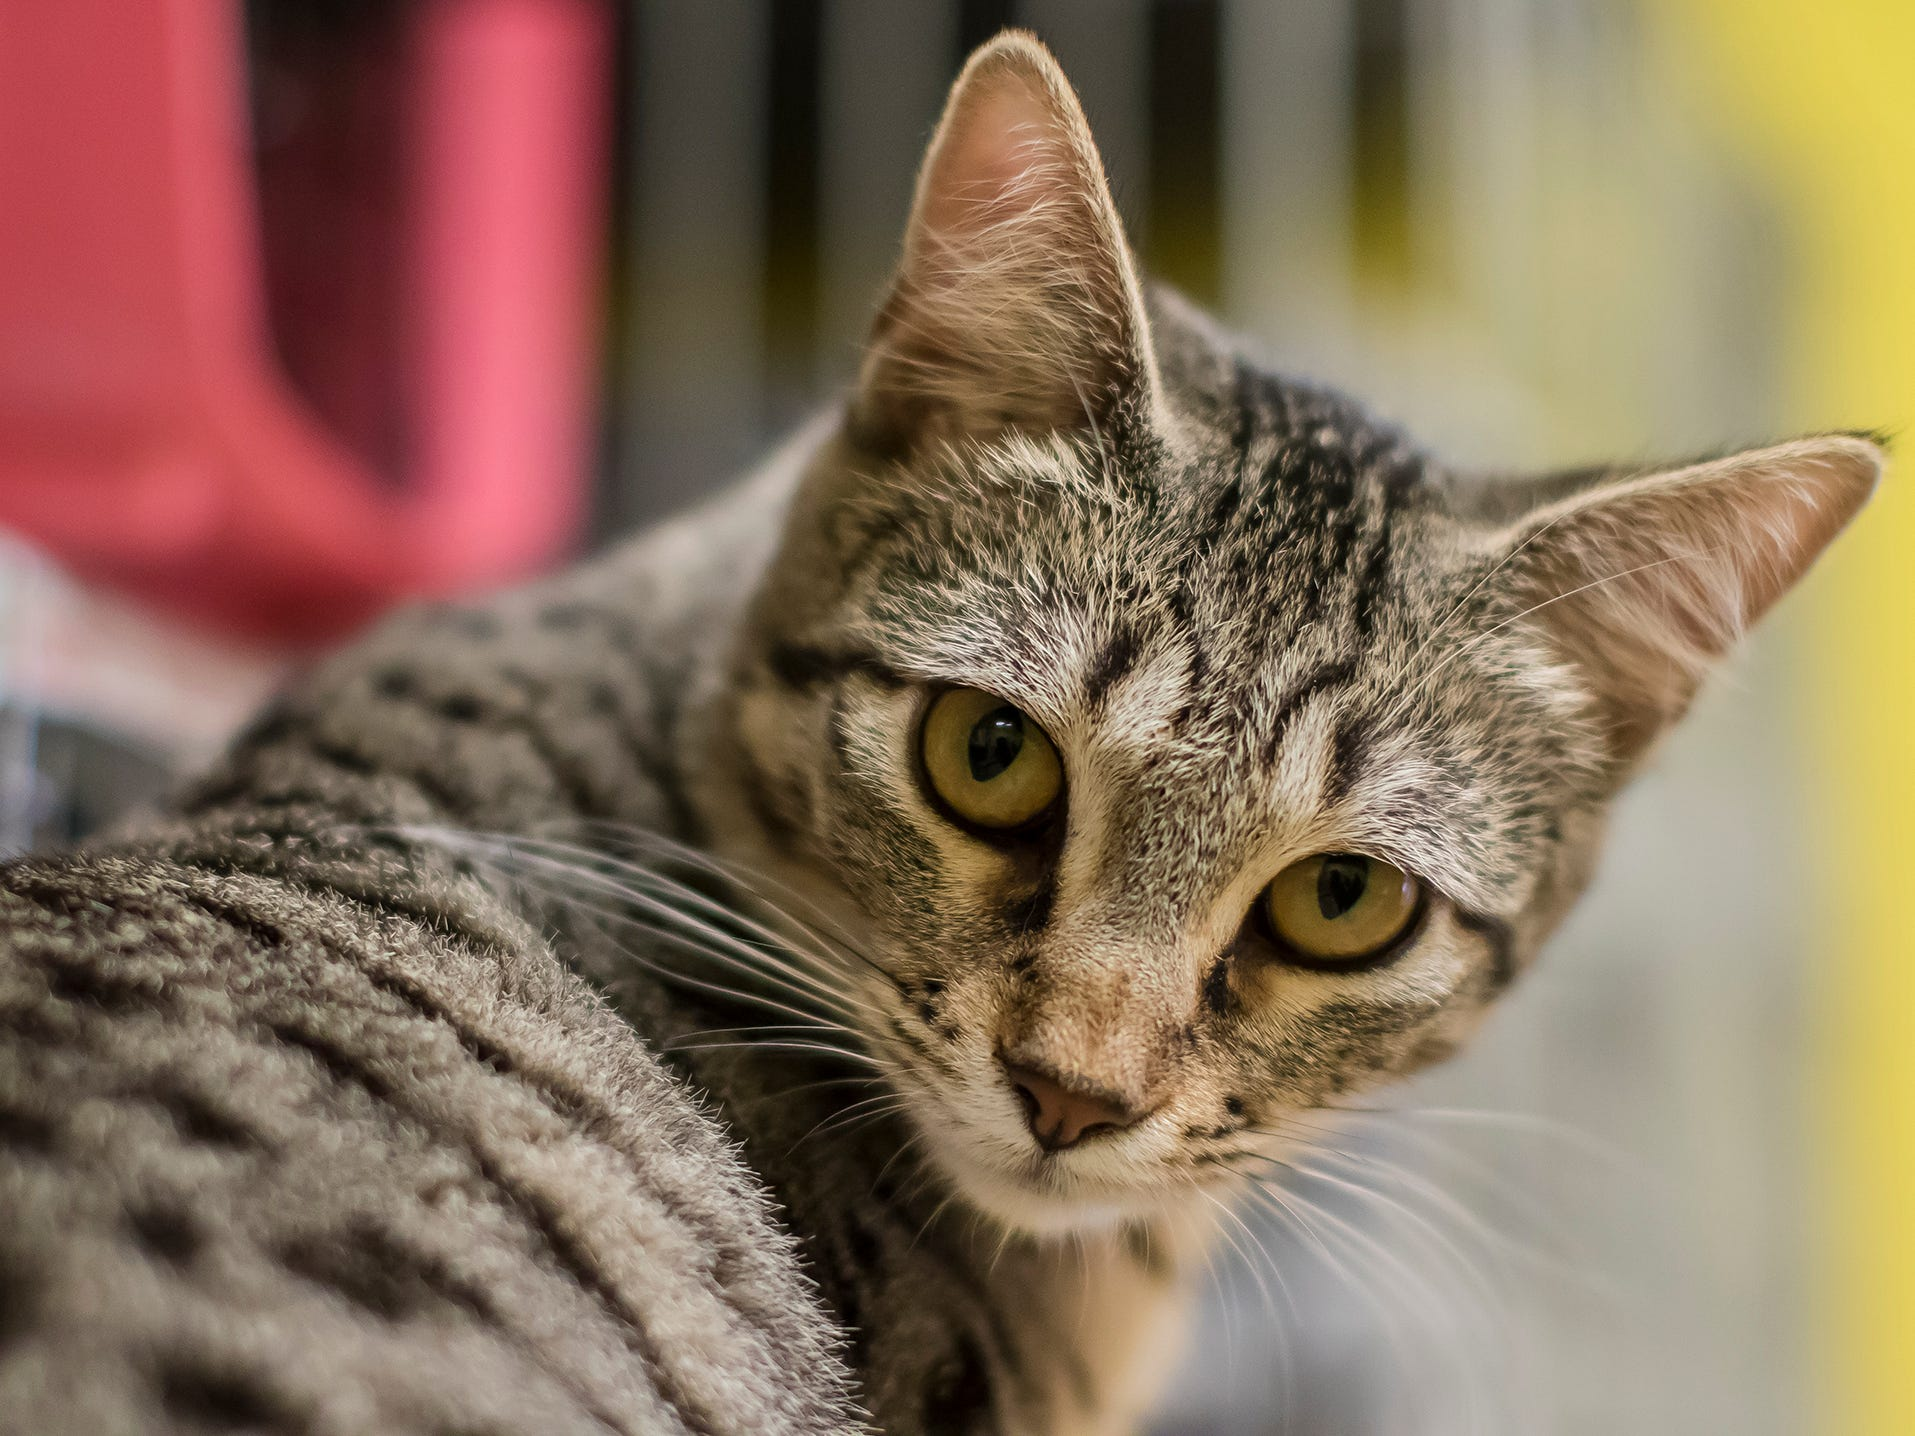 Sylvie is a playful tabby. She's 8 months old and likes other cats.